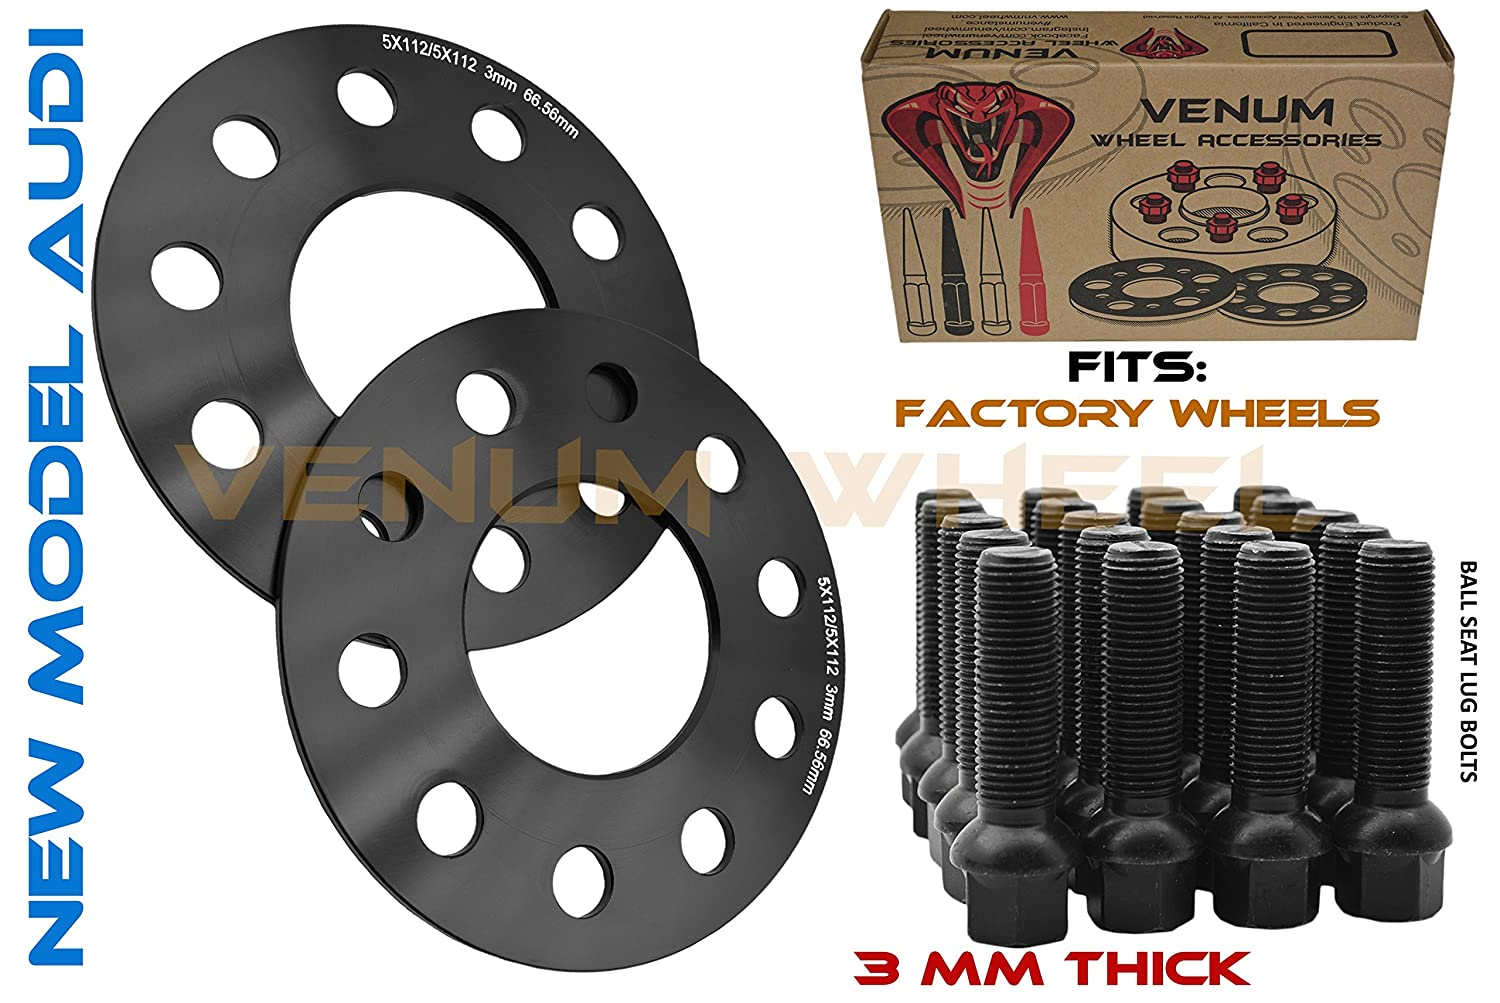 2009-2018 A4 A5 A6 A7 A8 All Road S4 S5 S6 S7 RS5 RS7 Q5 SQ5 W//OEM Wheels Hubcentric Wheel Spacers 5x112 66.56 Black Ball Seat Lug Bolts 14x1.5 2pc of 25mm 1